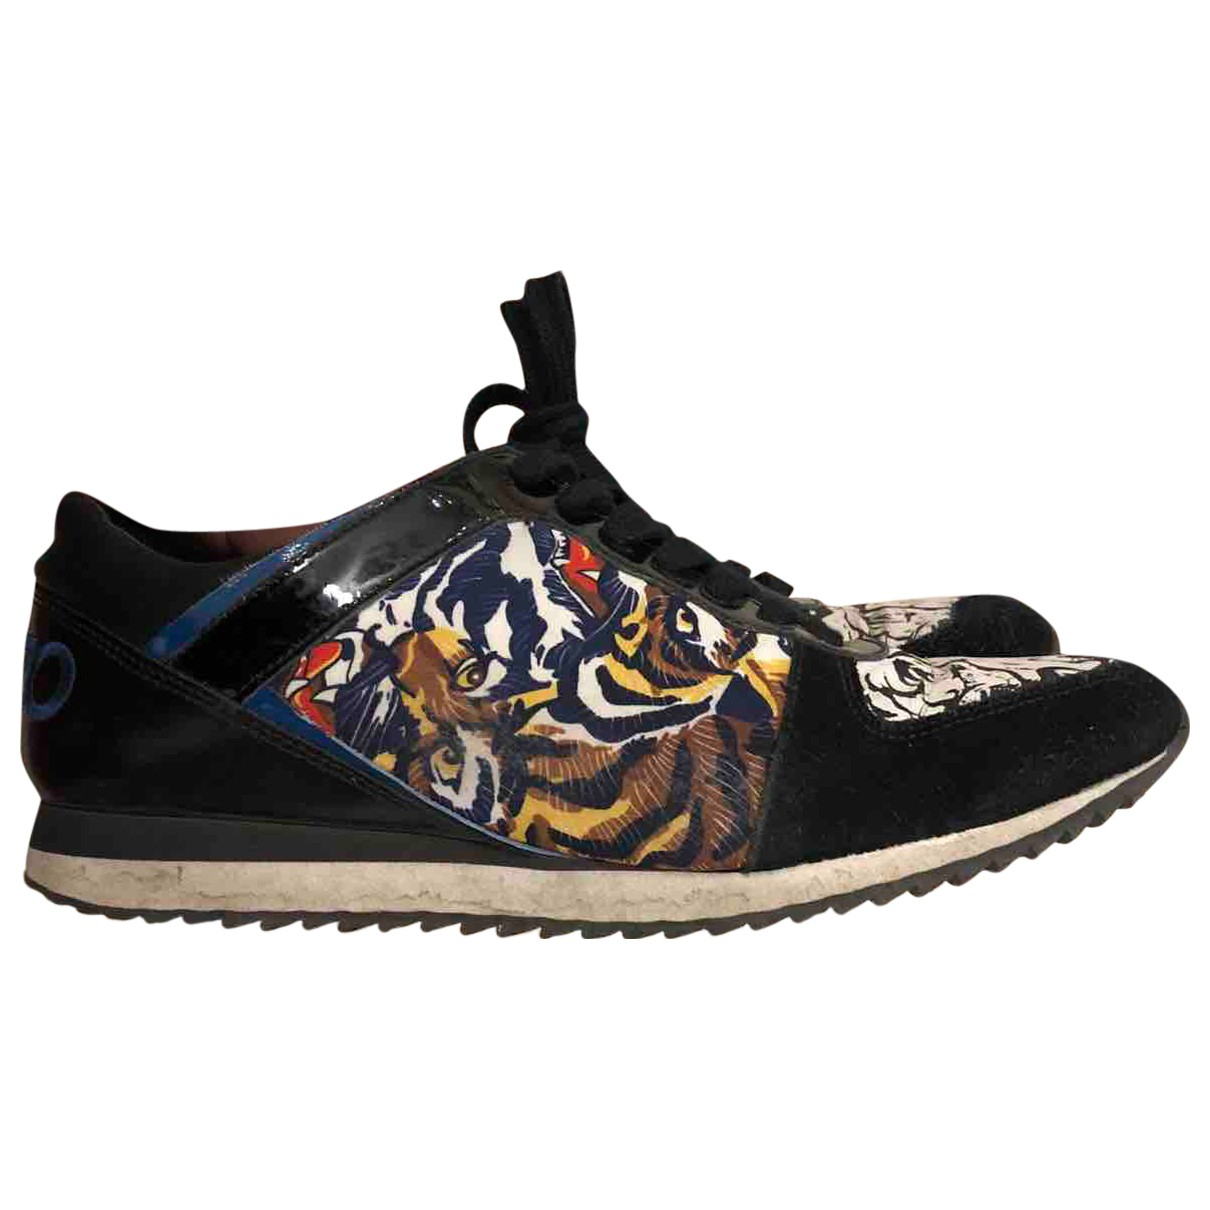 Kenzo N Black Leather Trainers for Women 40 EU